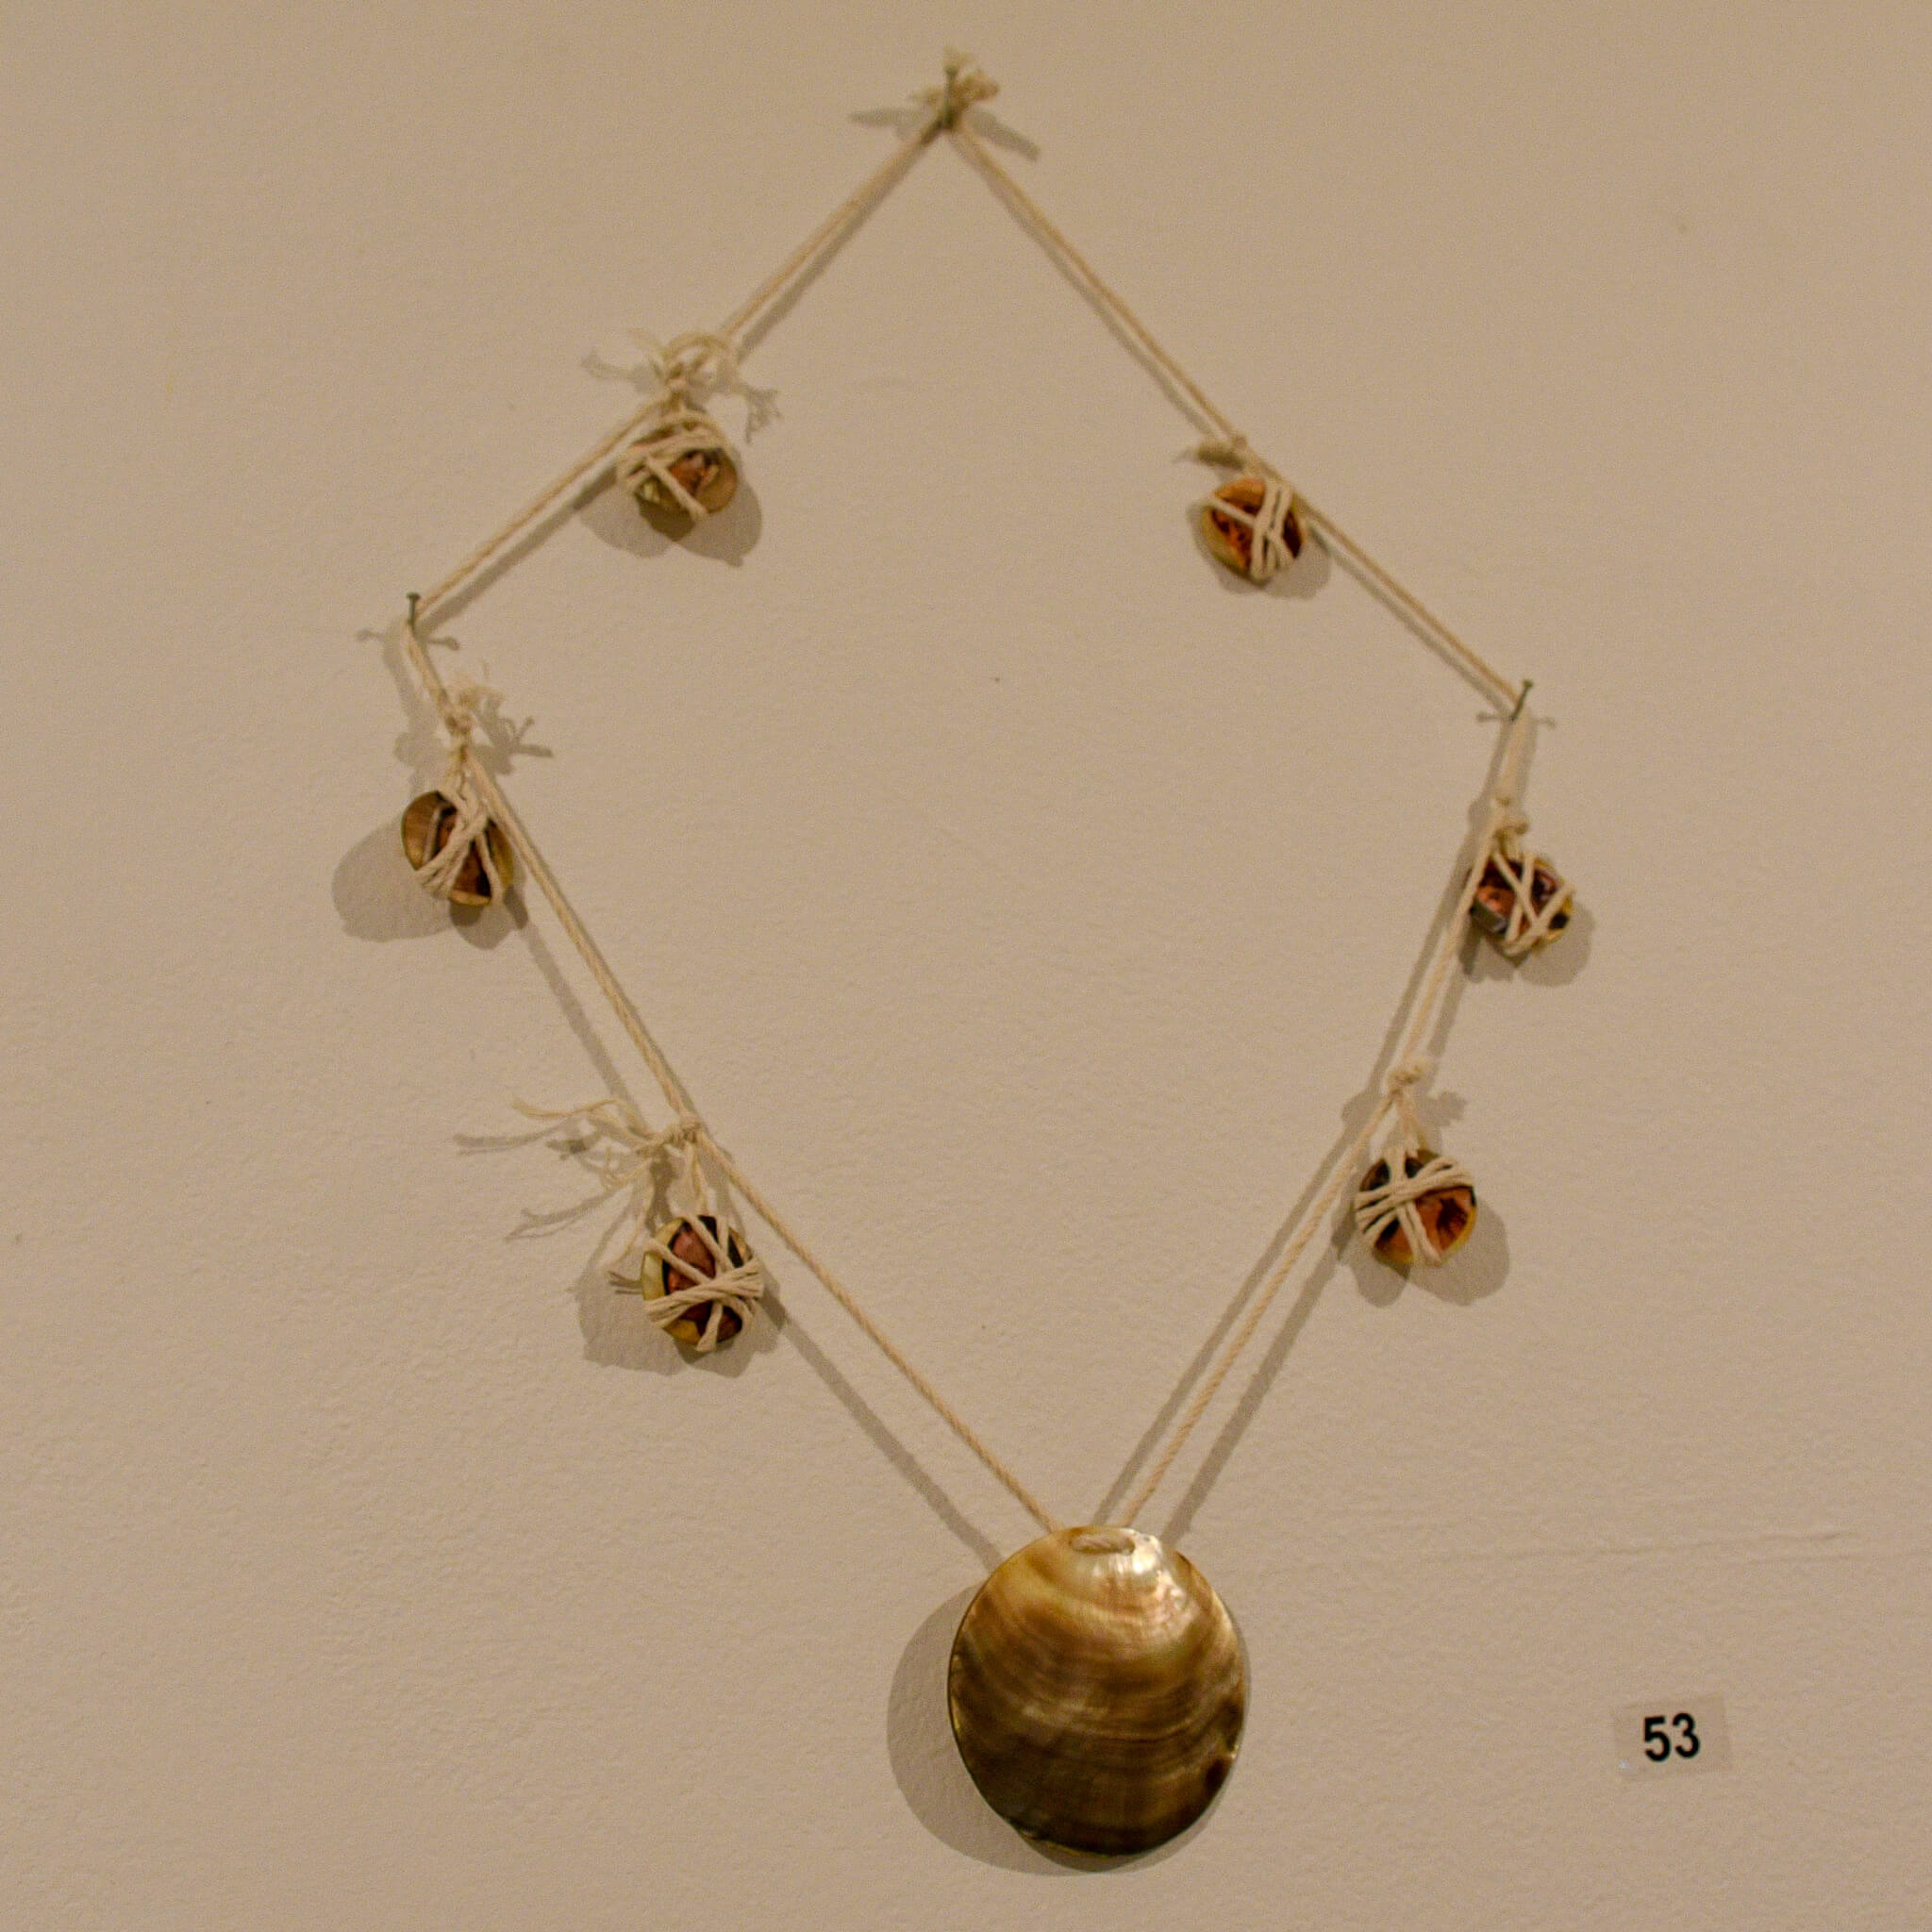 Edwina Green's piece,<em>Not A Maireener Shell Necklace,</em> on the wall at the Koorie Art Show